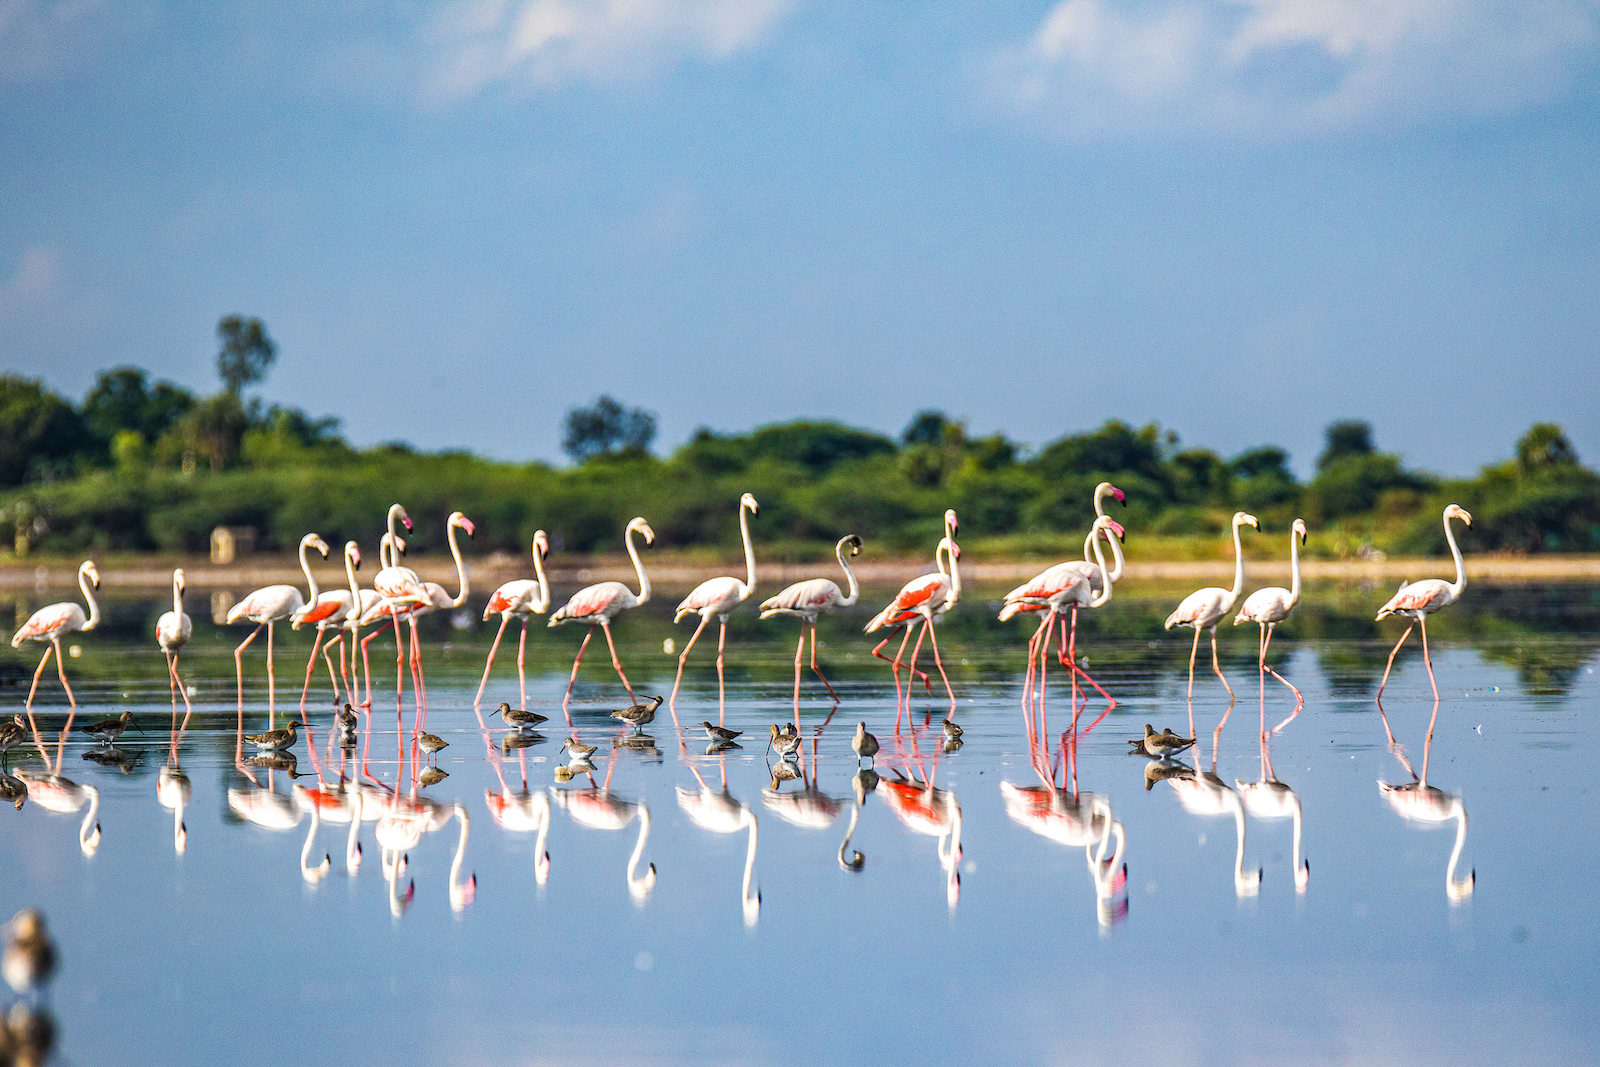 A vital stopover location on the Central Asian flyway for many migratory birds, the Pulicat lagoon is known for the flocks of greater flamingos that visit during the winter season. Photo: Rama Neelamegam  Cover photo: Pulicat, one of India's largest brackish water lagoons is a biodiverse region that is just 60 km from Chennai city. Cover photo: M. Yuvan